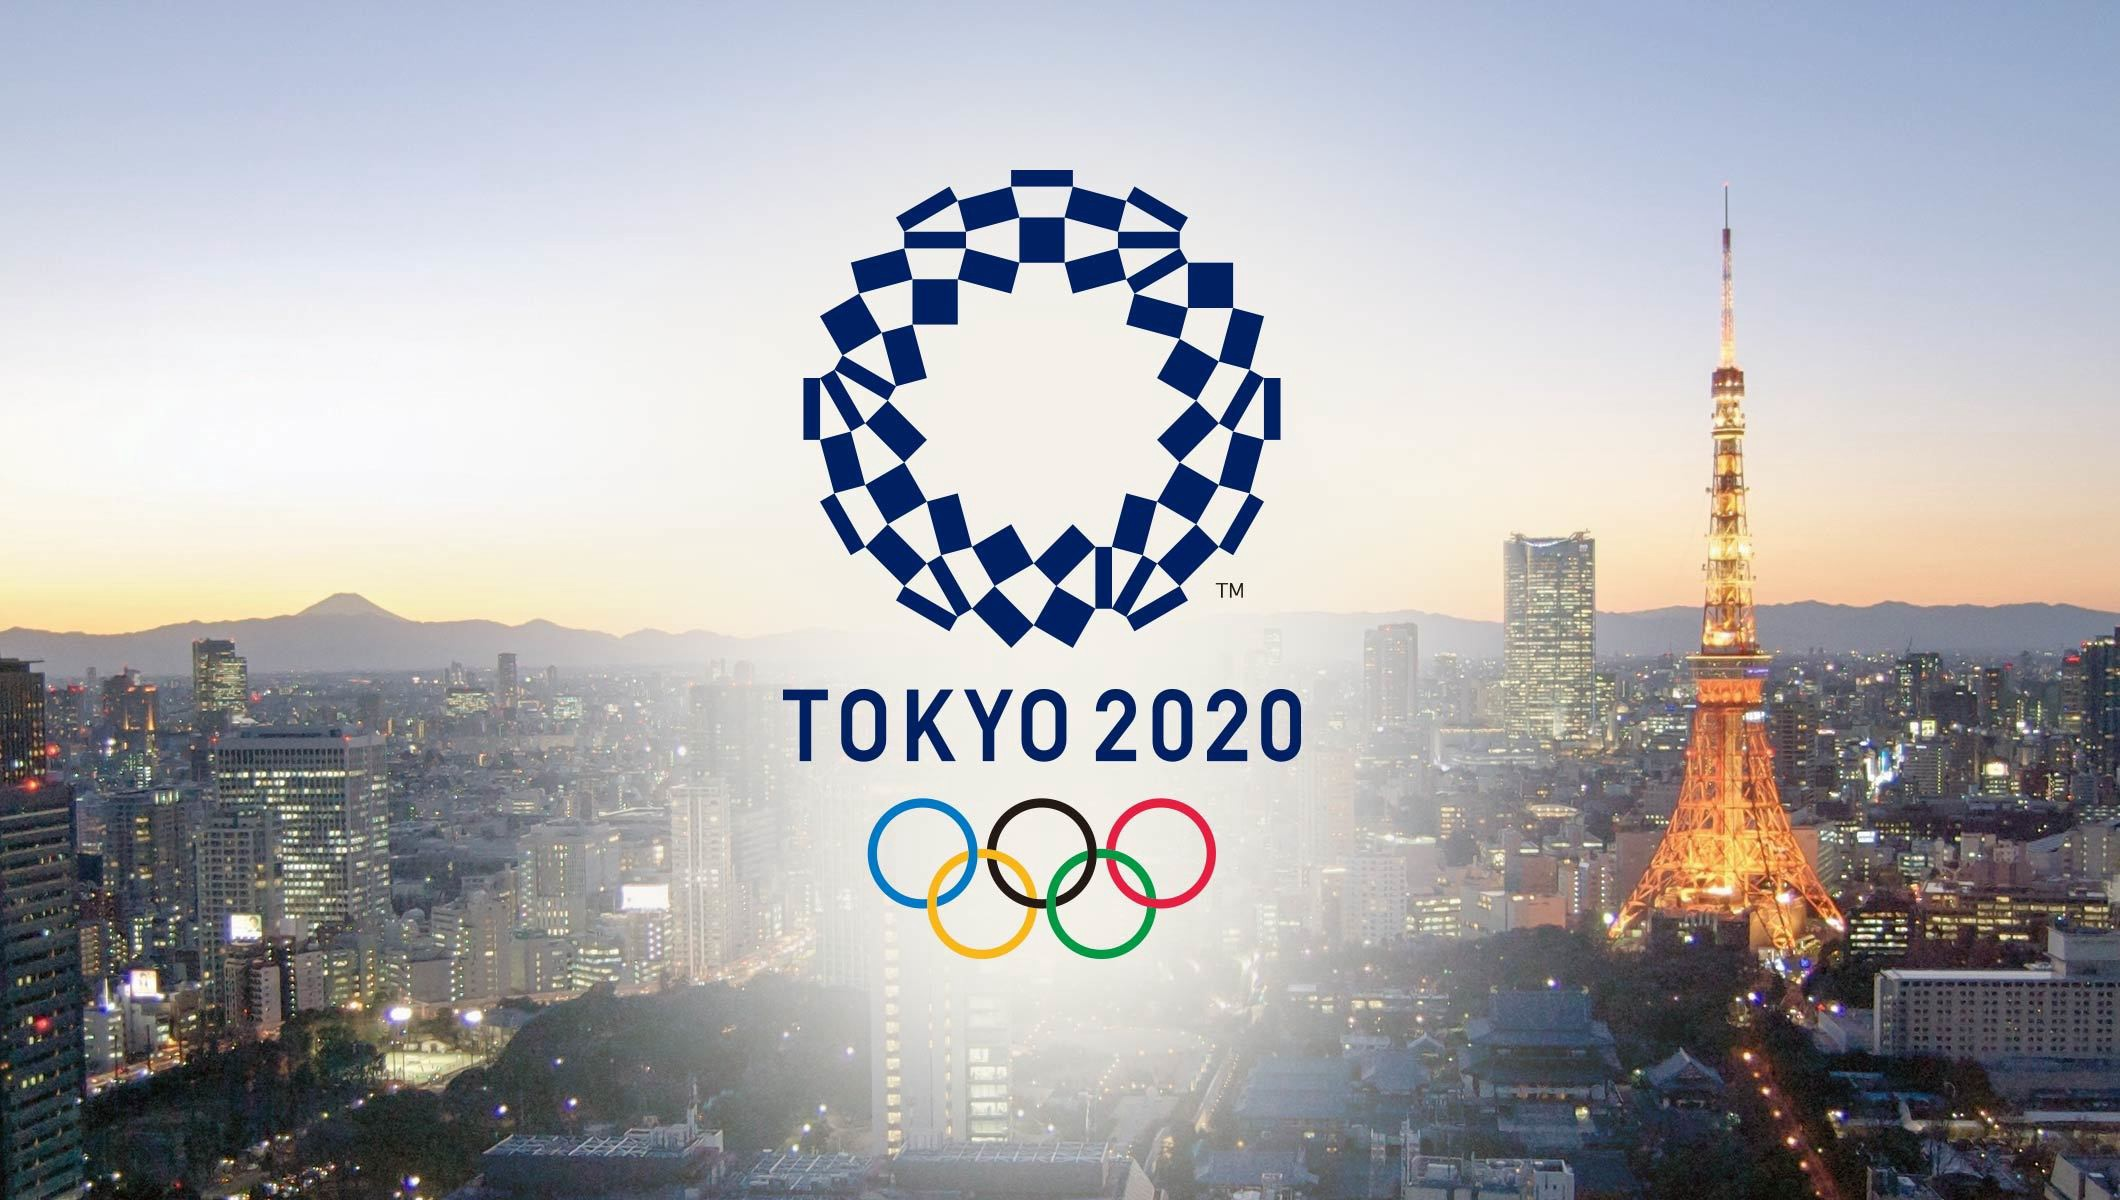 Nigeria Opens Camp For Tokyo 2020 Olympics